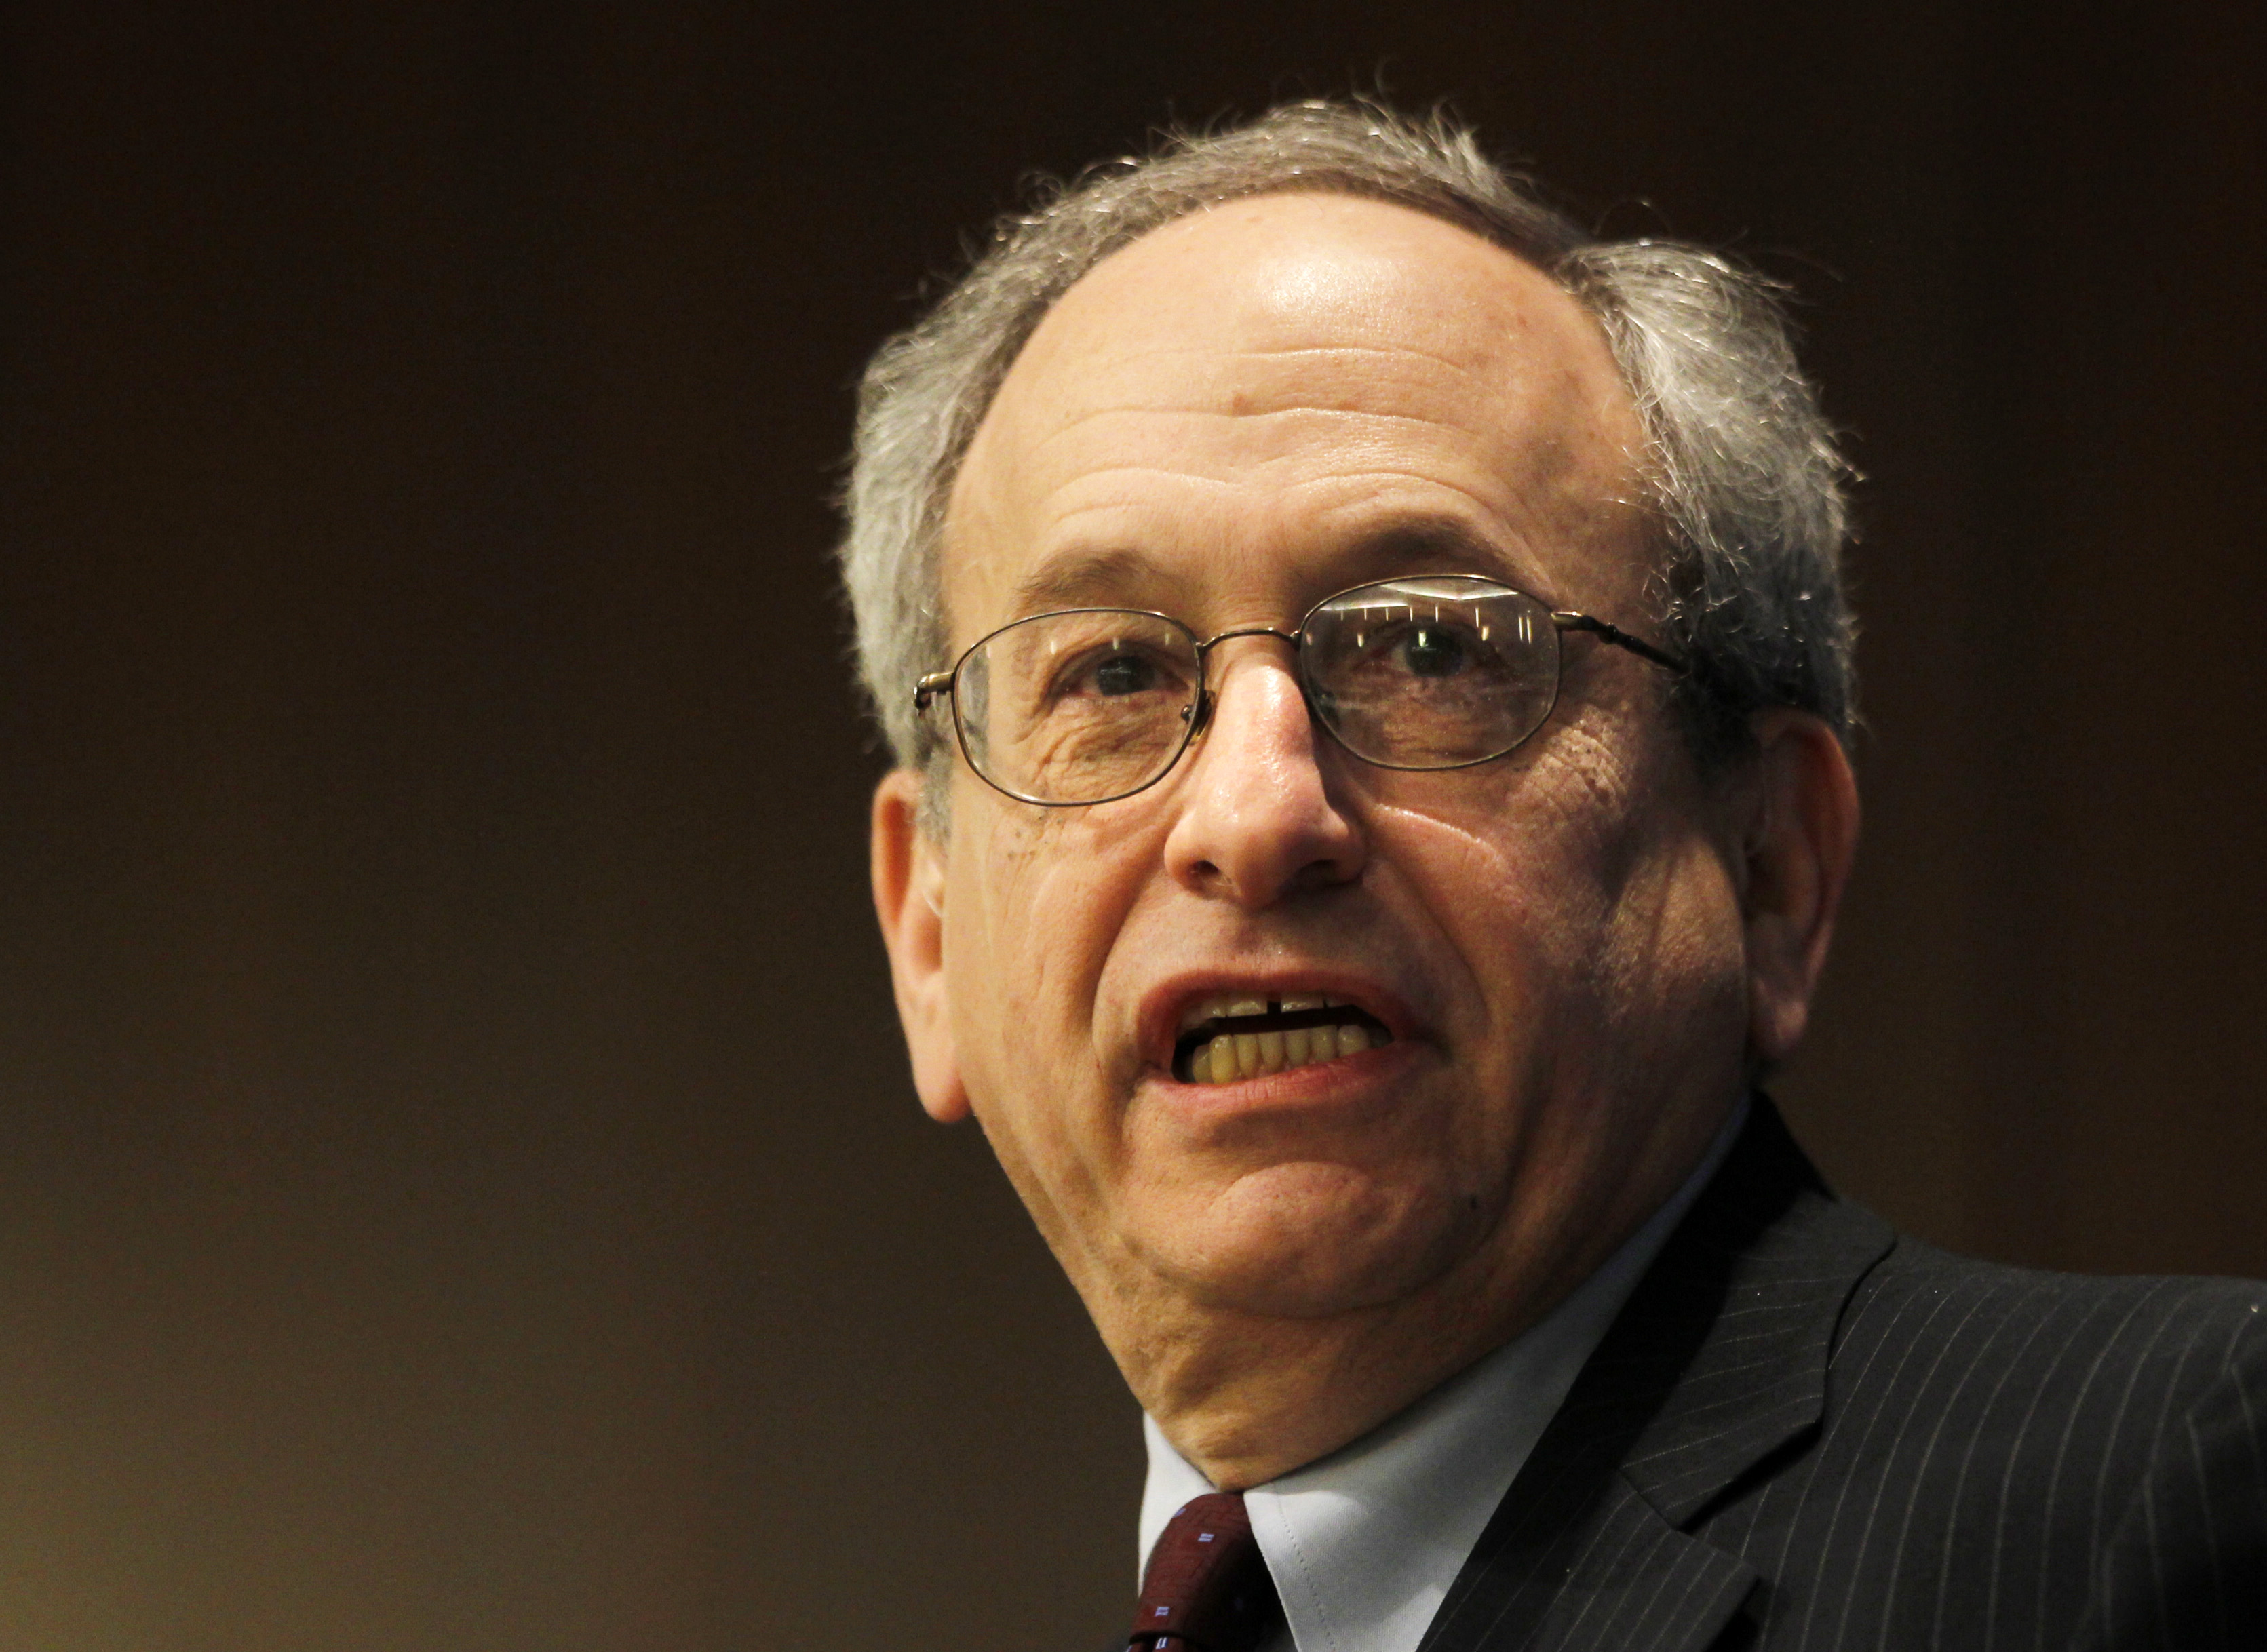 Kohn, Vice Chairman of the Board of Governors of the Federal Reserve System, speaks at the Symposium on interest rate risk management in Arlington